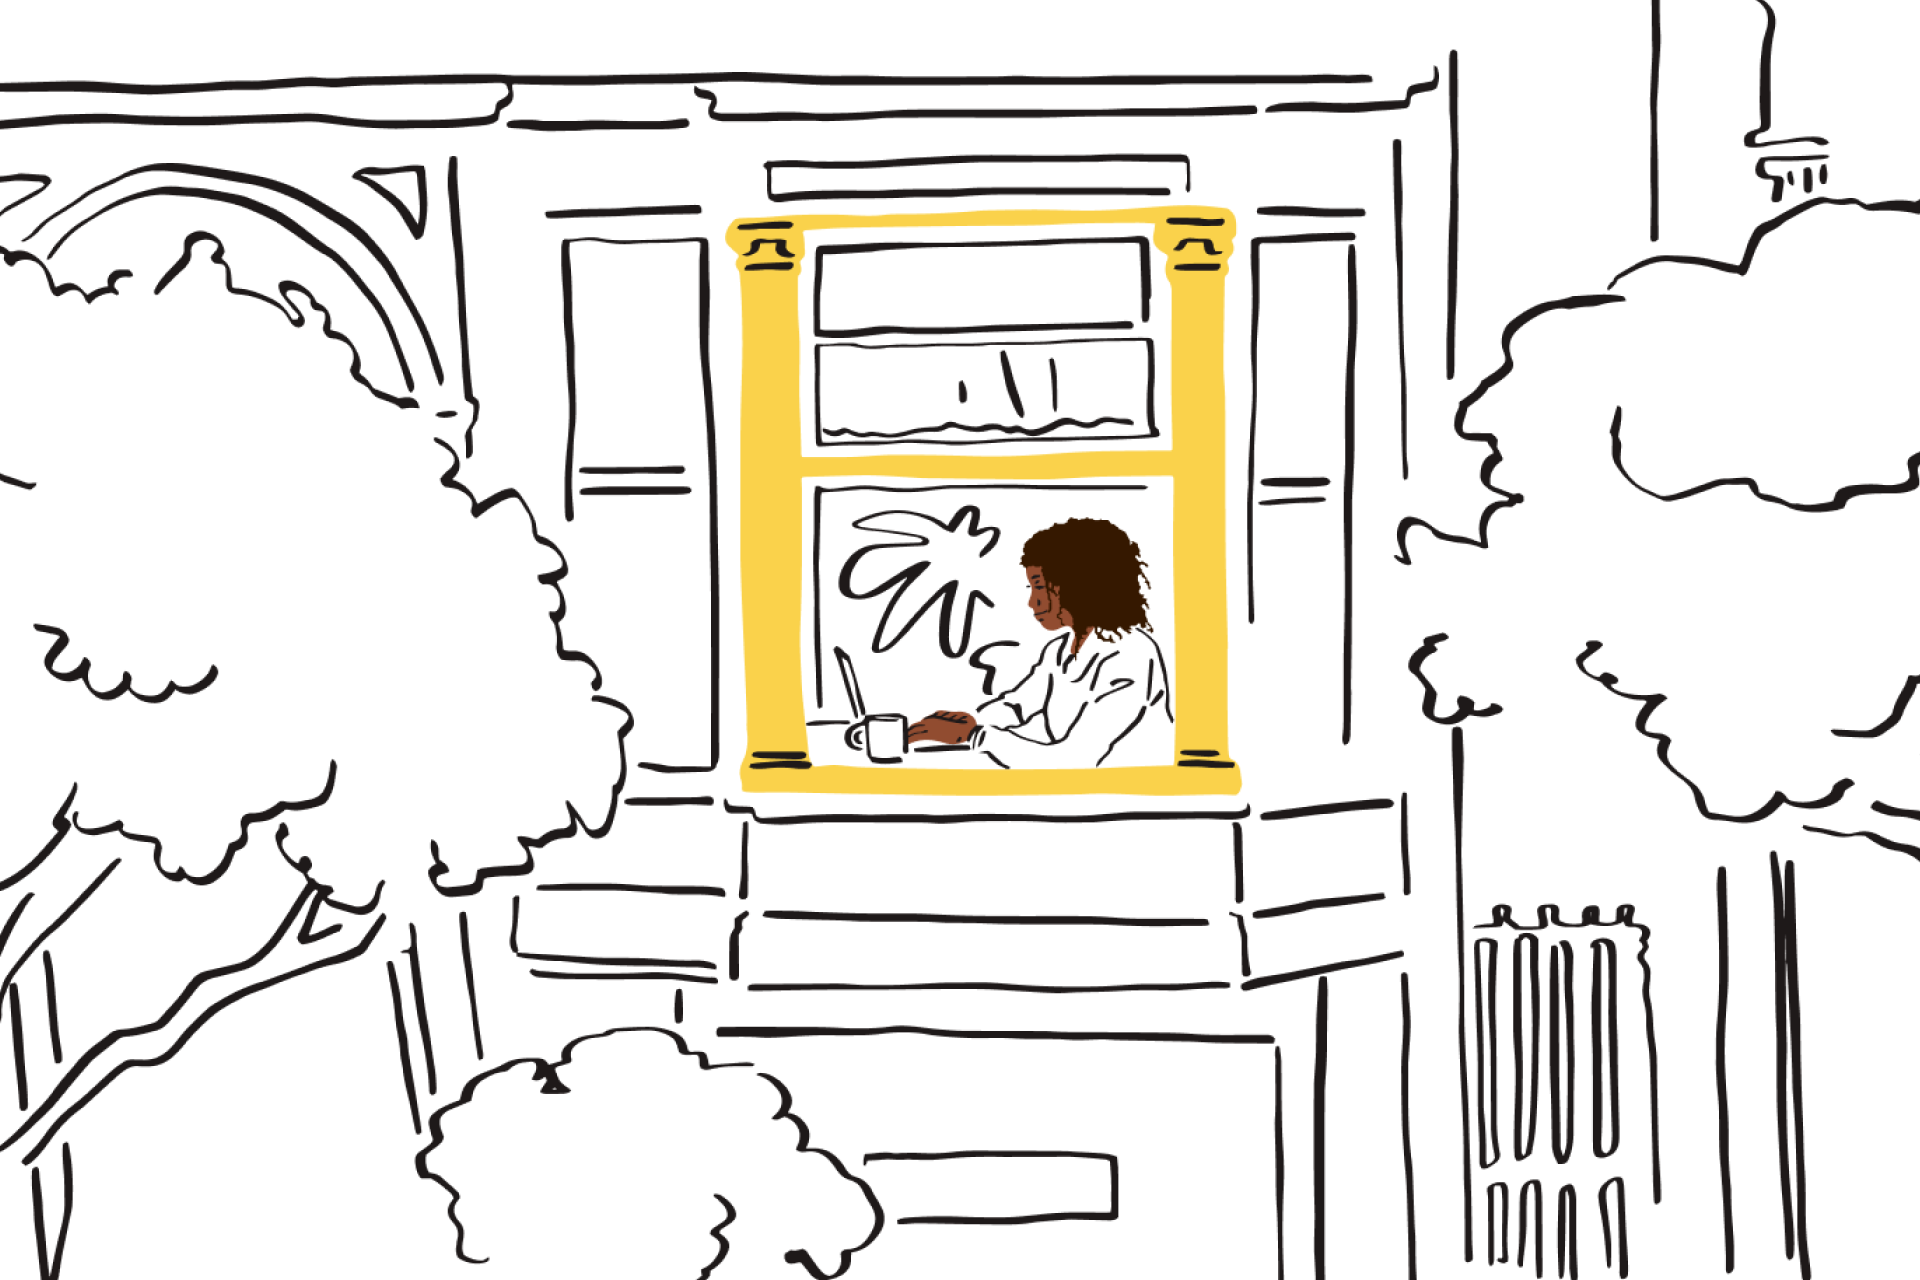 An illustration of a person working remotely from their home